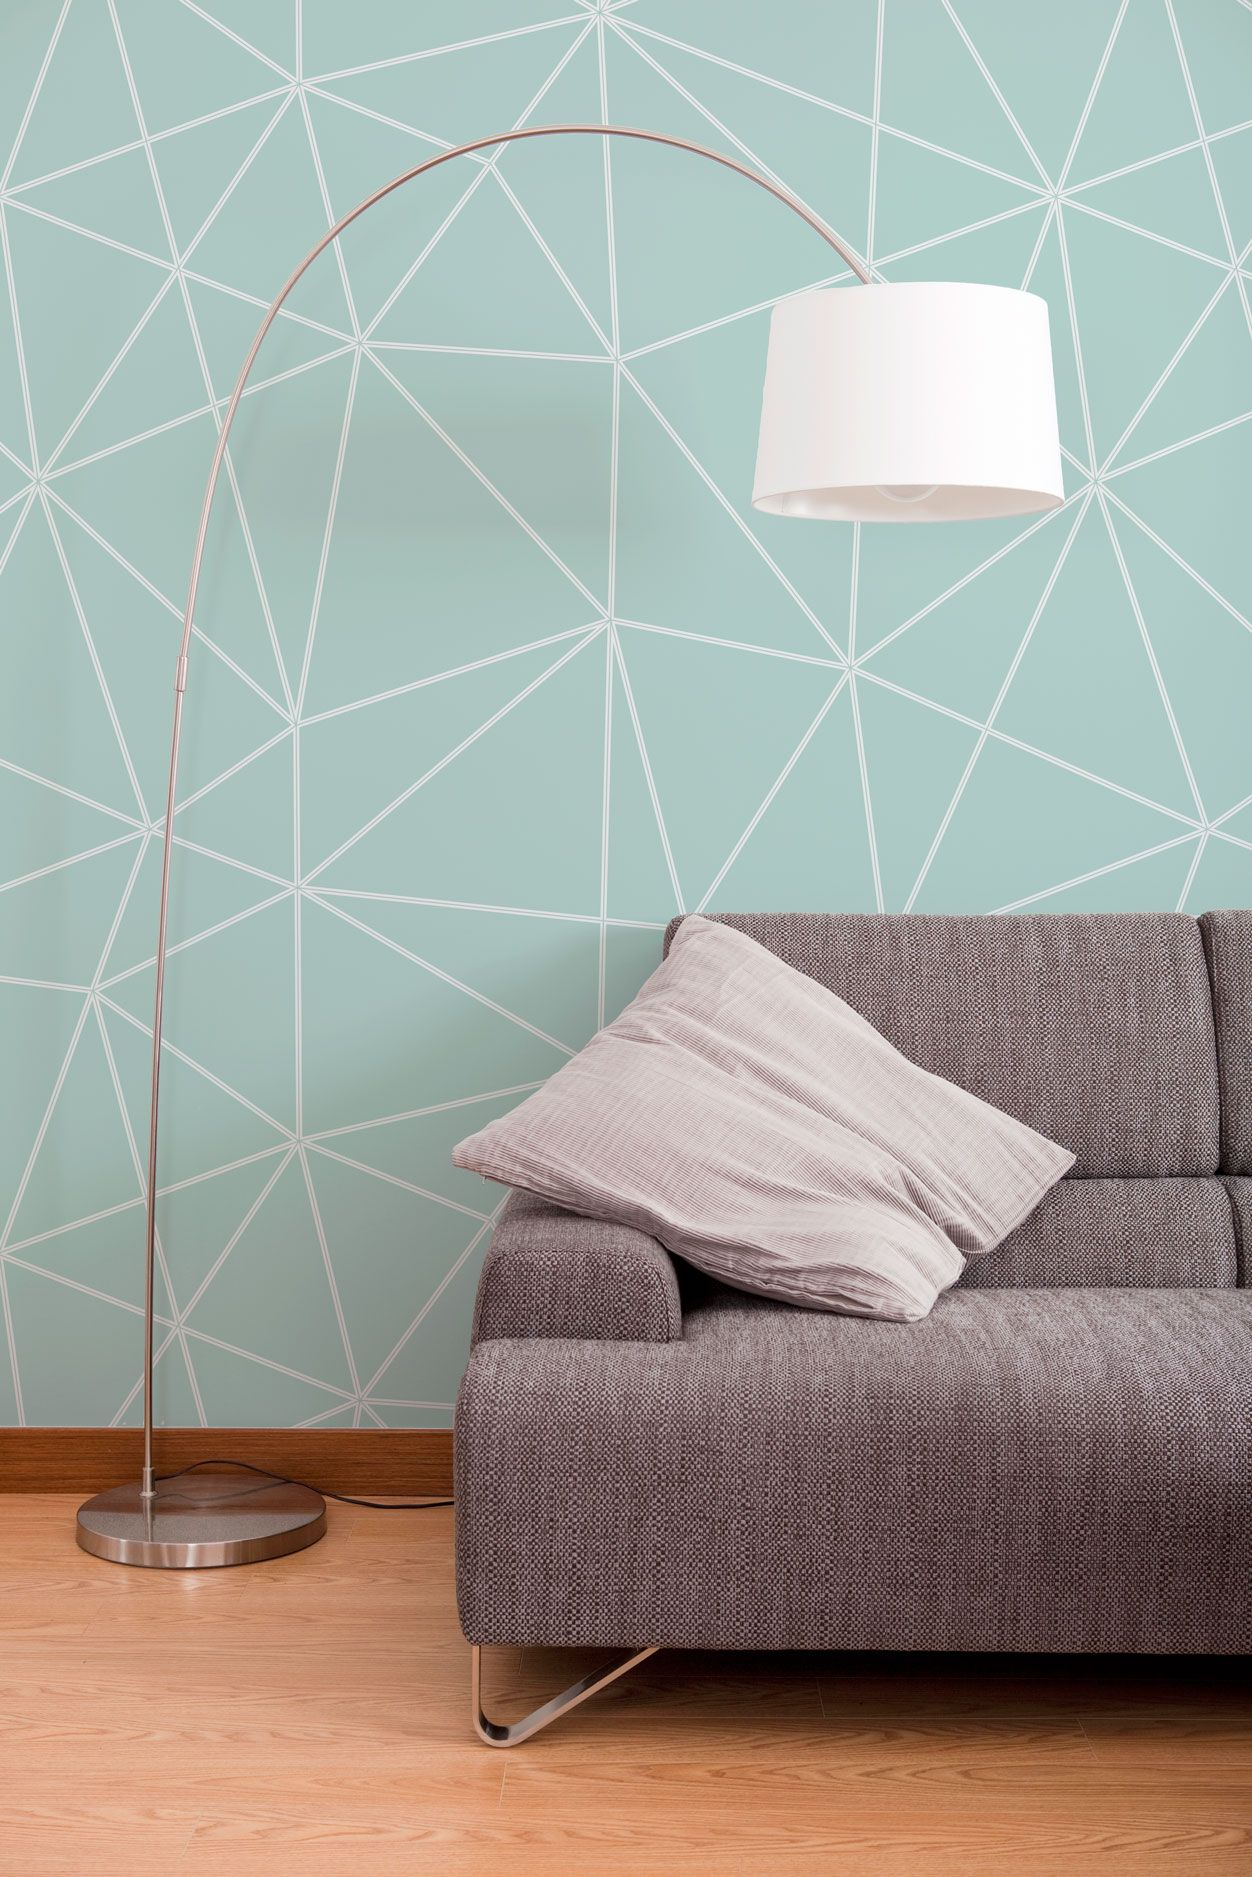 Modern Behang Woonkamer When You Have Statement Patterned Wallpaper Minimal Furniture In